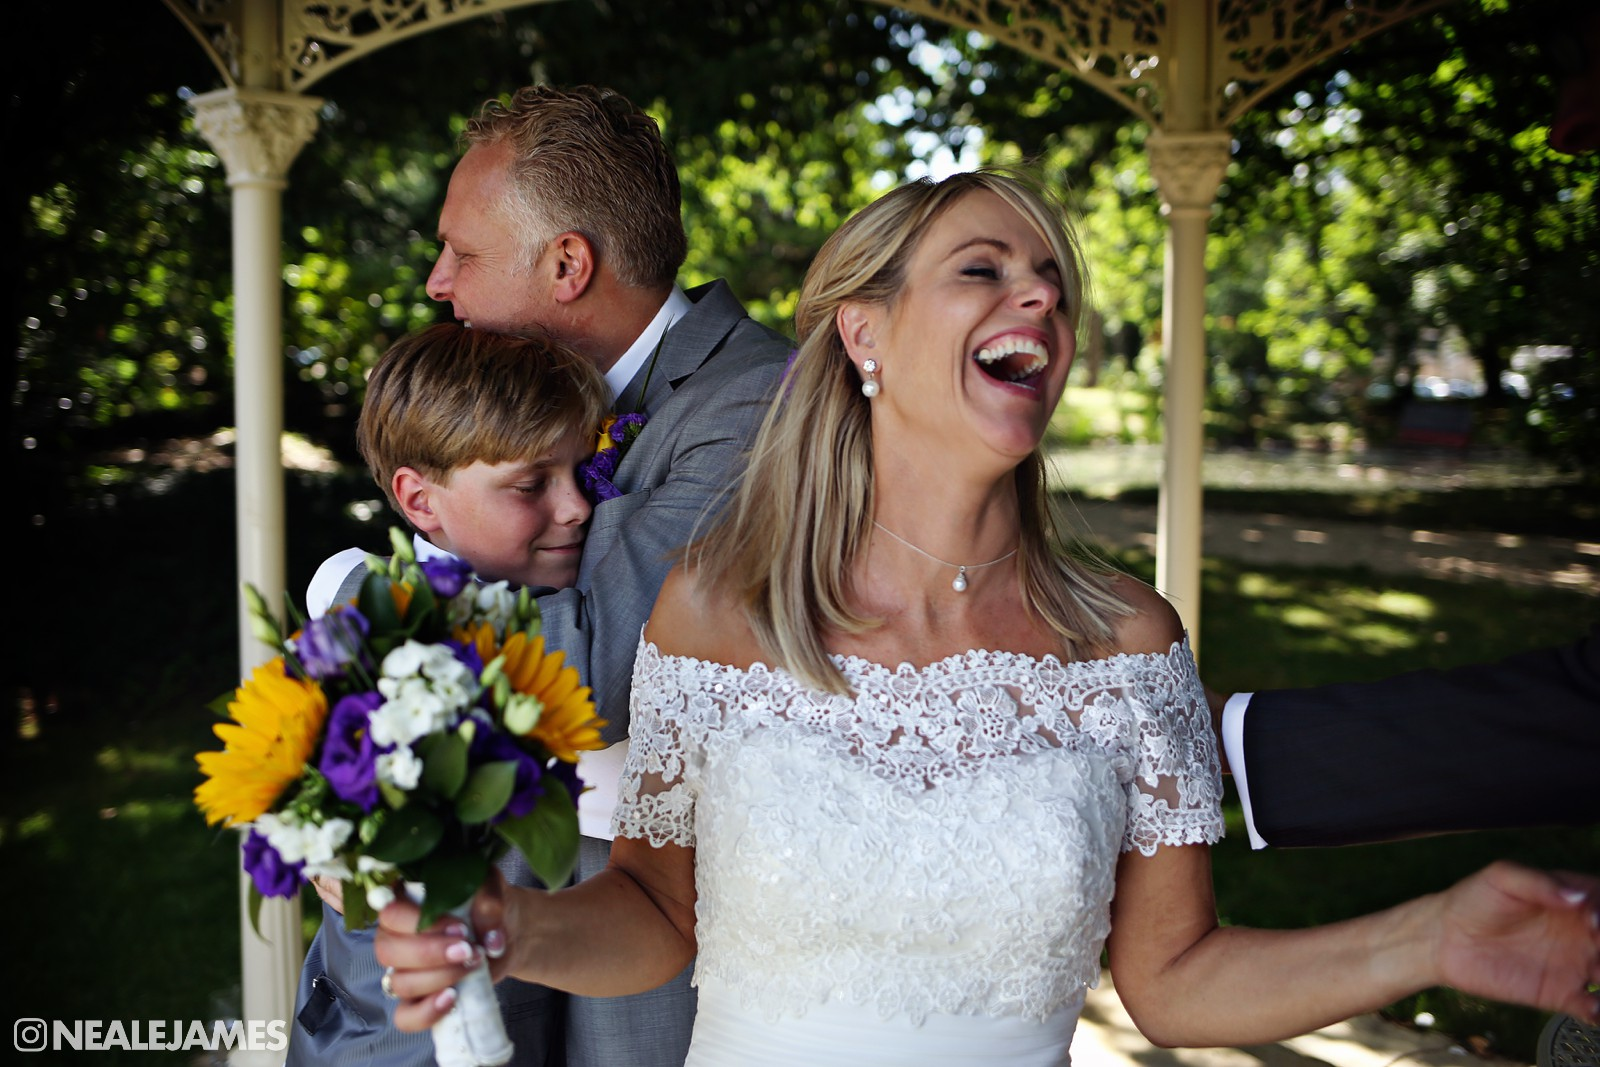 A bride ecstatically happy following her wedding